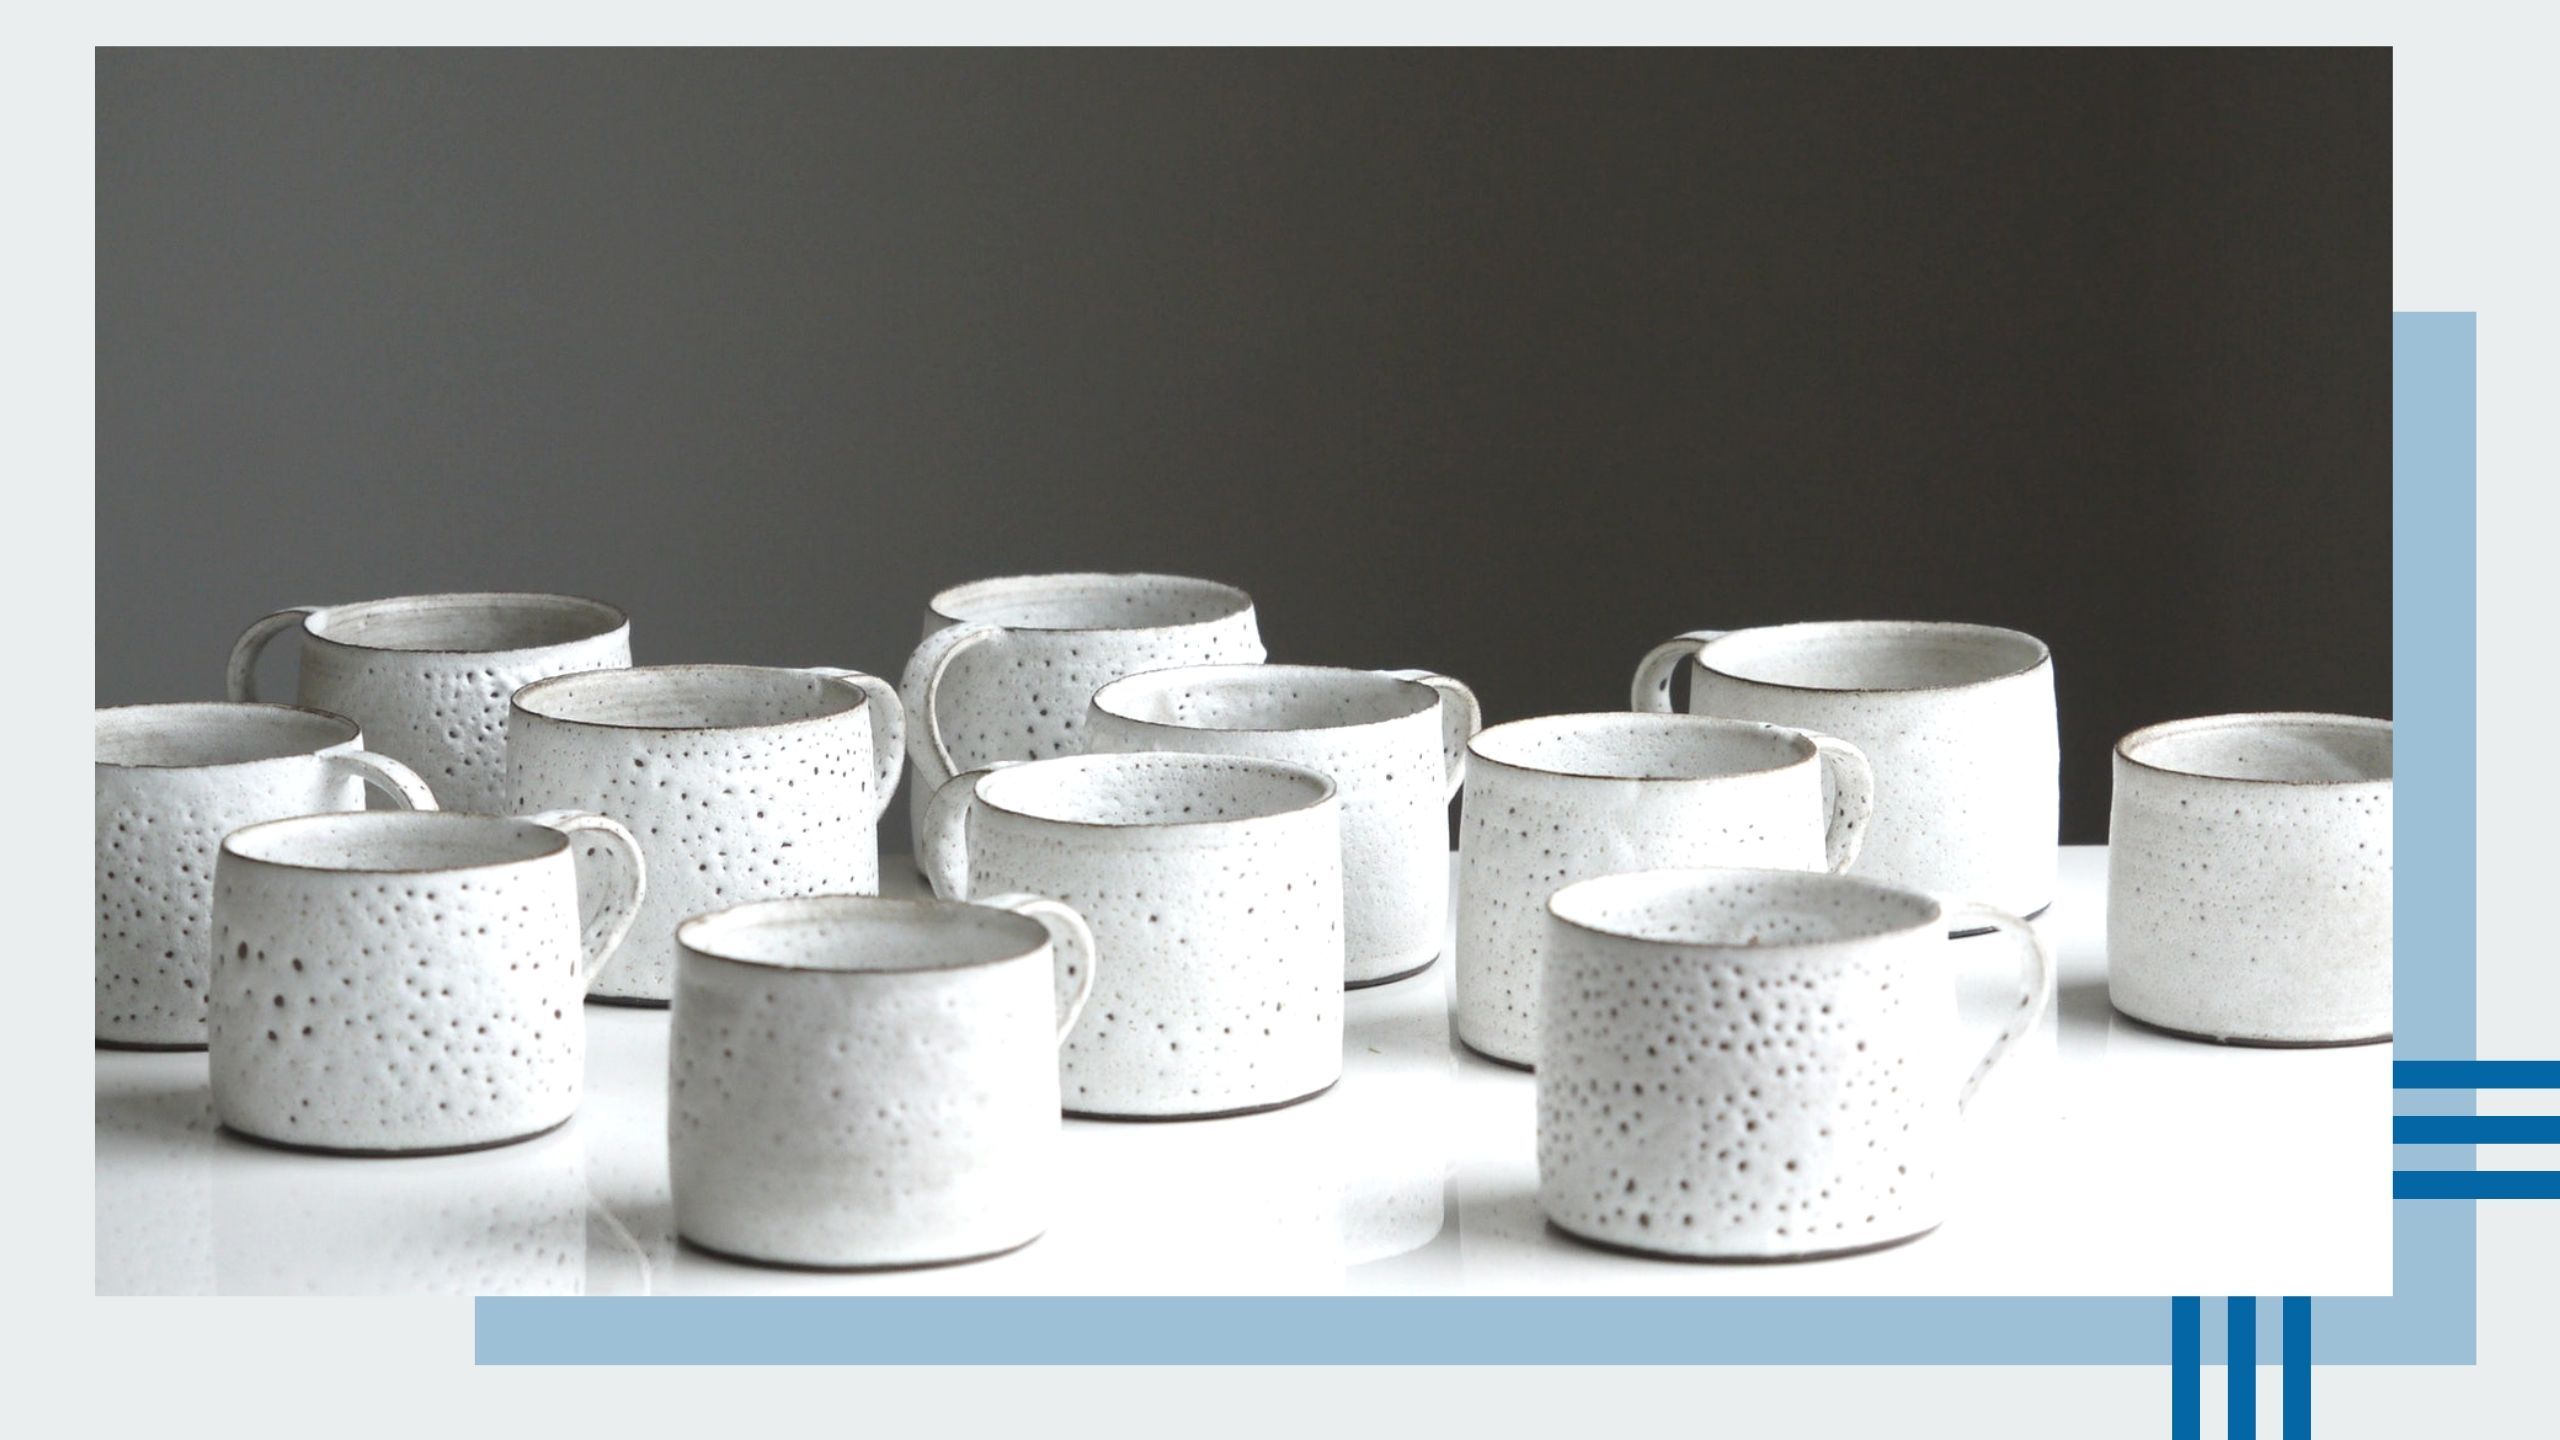 Ceramic mugs consignment wholesale or dropshipping